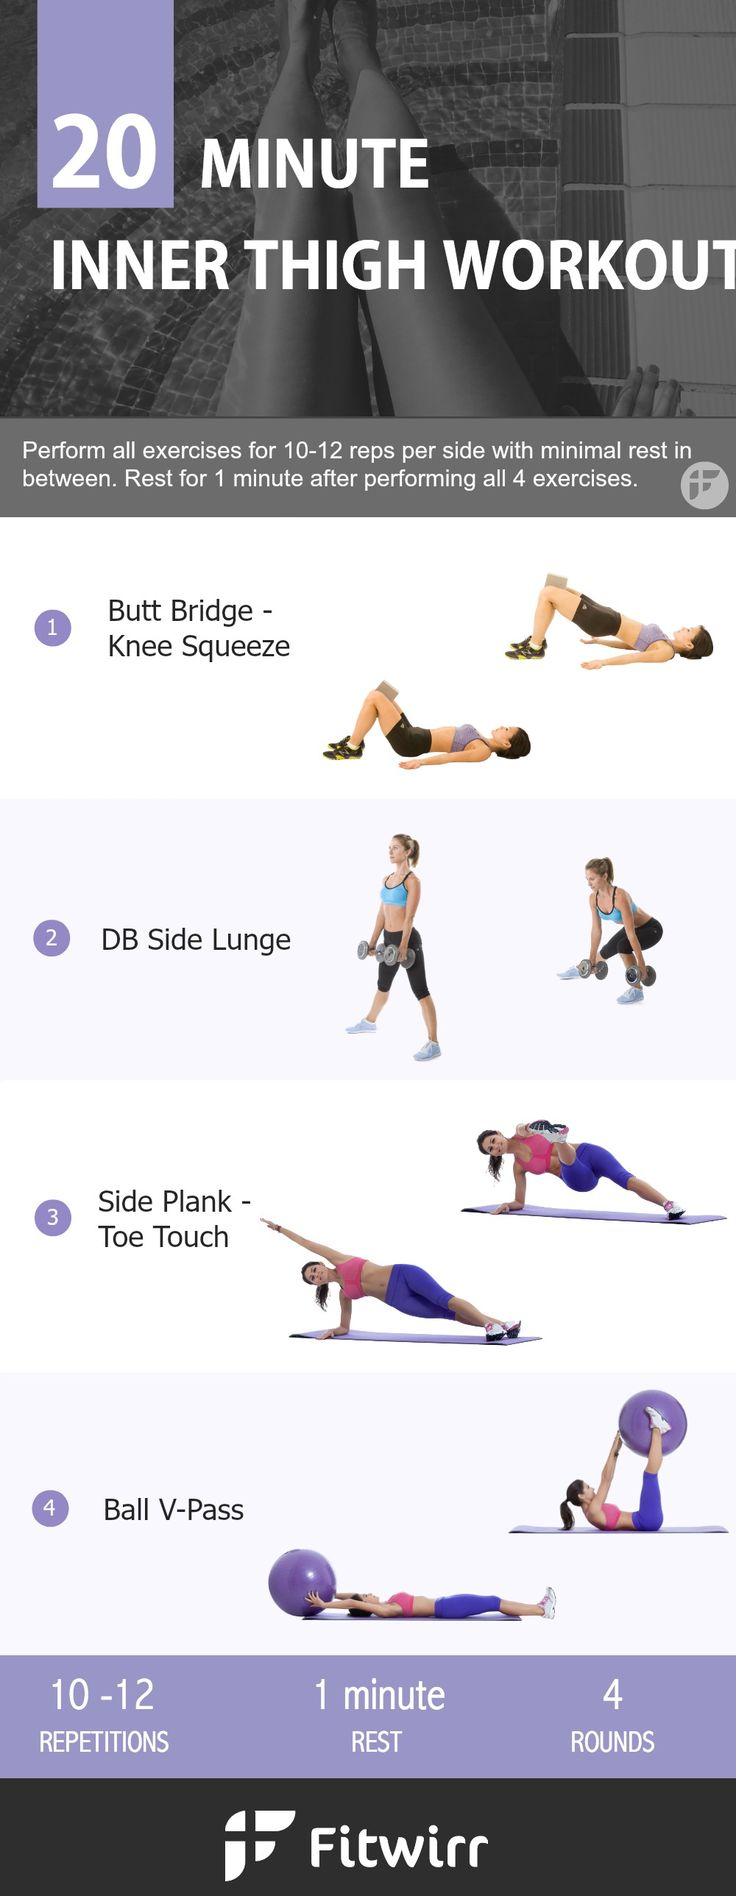 Are you struggling to lose your inner thigh fat? We have the best 20 minute inner workout with only 4 leg exercises to work those inner leg muscles and get them stronger and healthier.